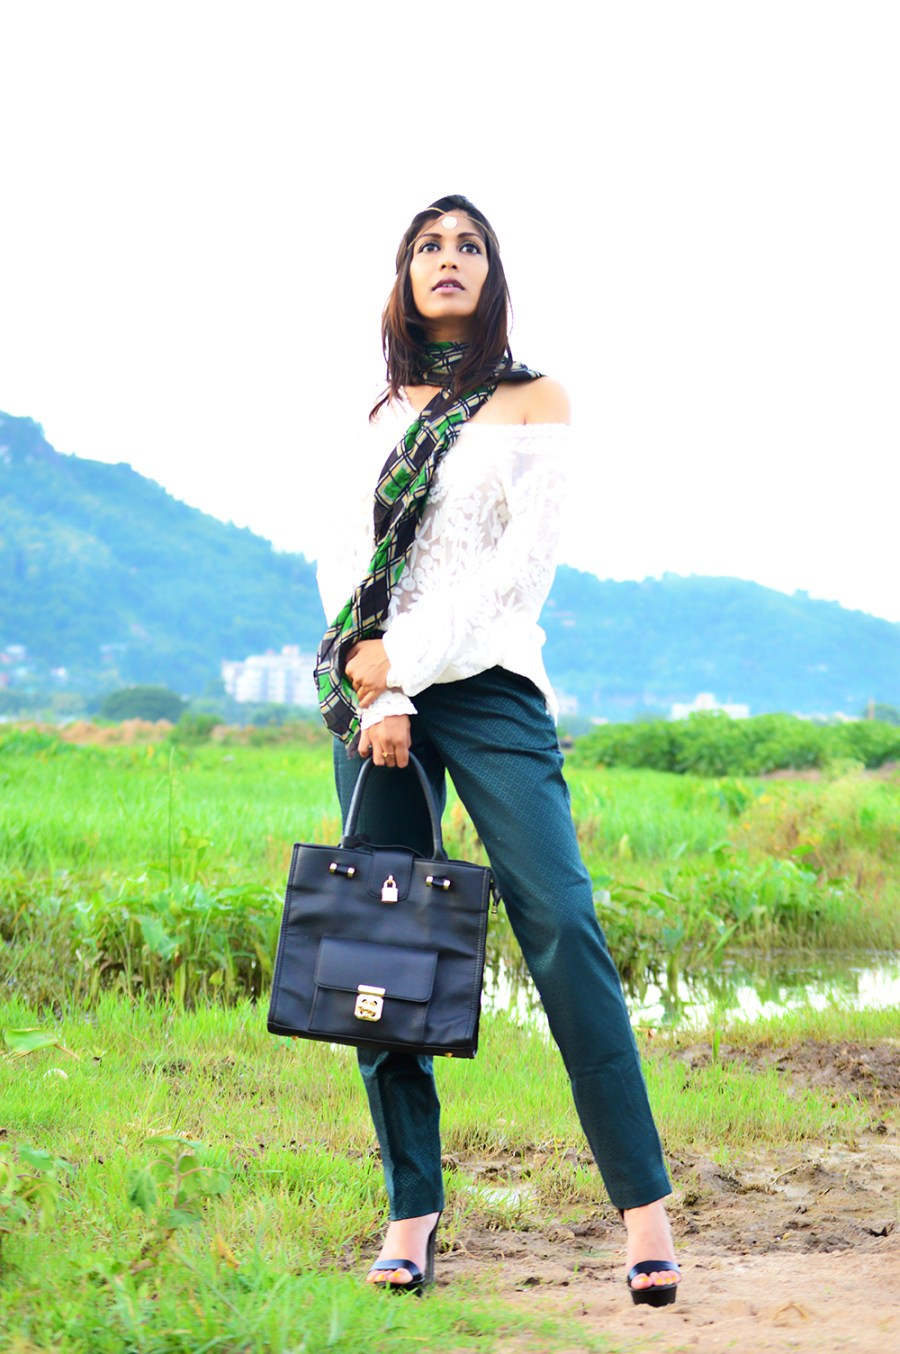 Fashion, Style, Street Style, Fashion Blogger, Fashion Photography, Indian Blogger, Lace Top, Green Trousers, Silk Scarf, Black Bag, Summer Fashion, Style Over Coffee, Pankaj Jyoti Barua Photography, Sarmistha Goswami, Street Style Photography-1